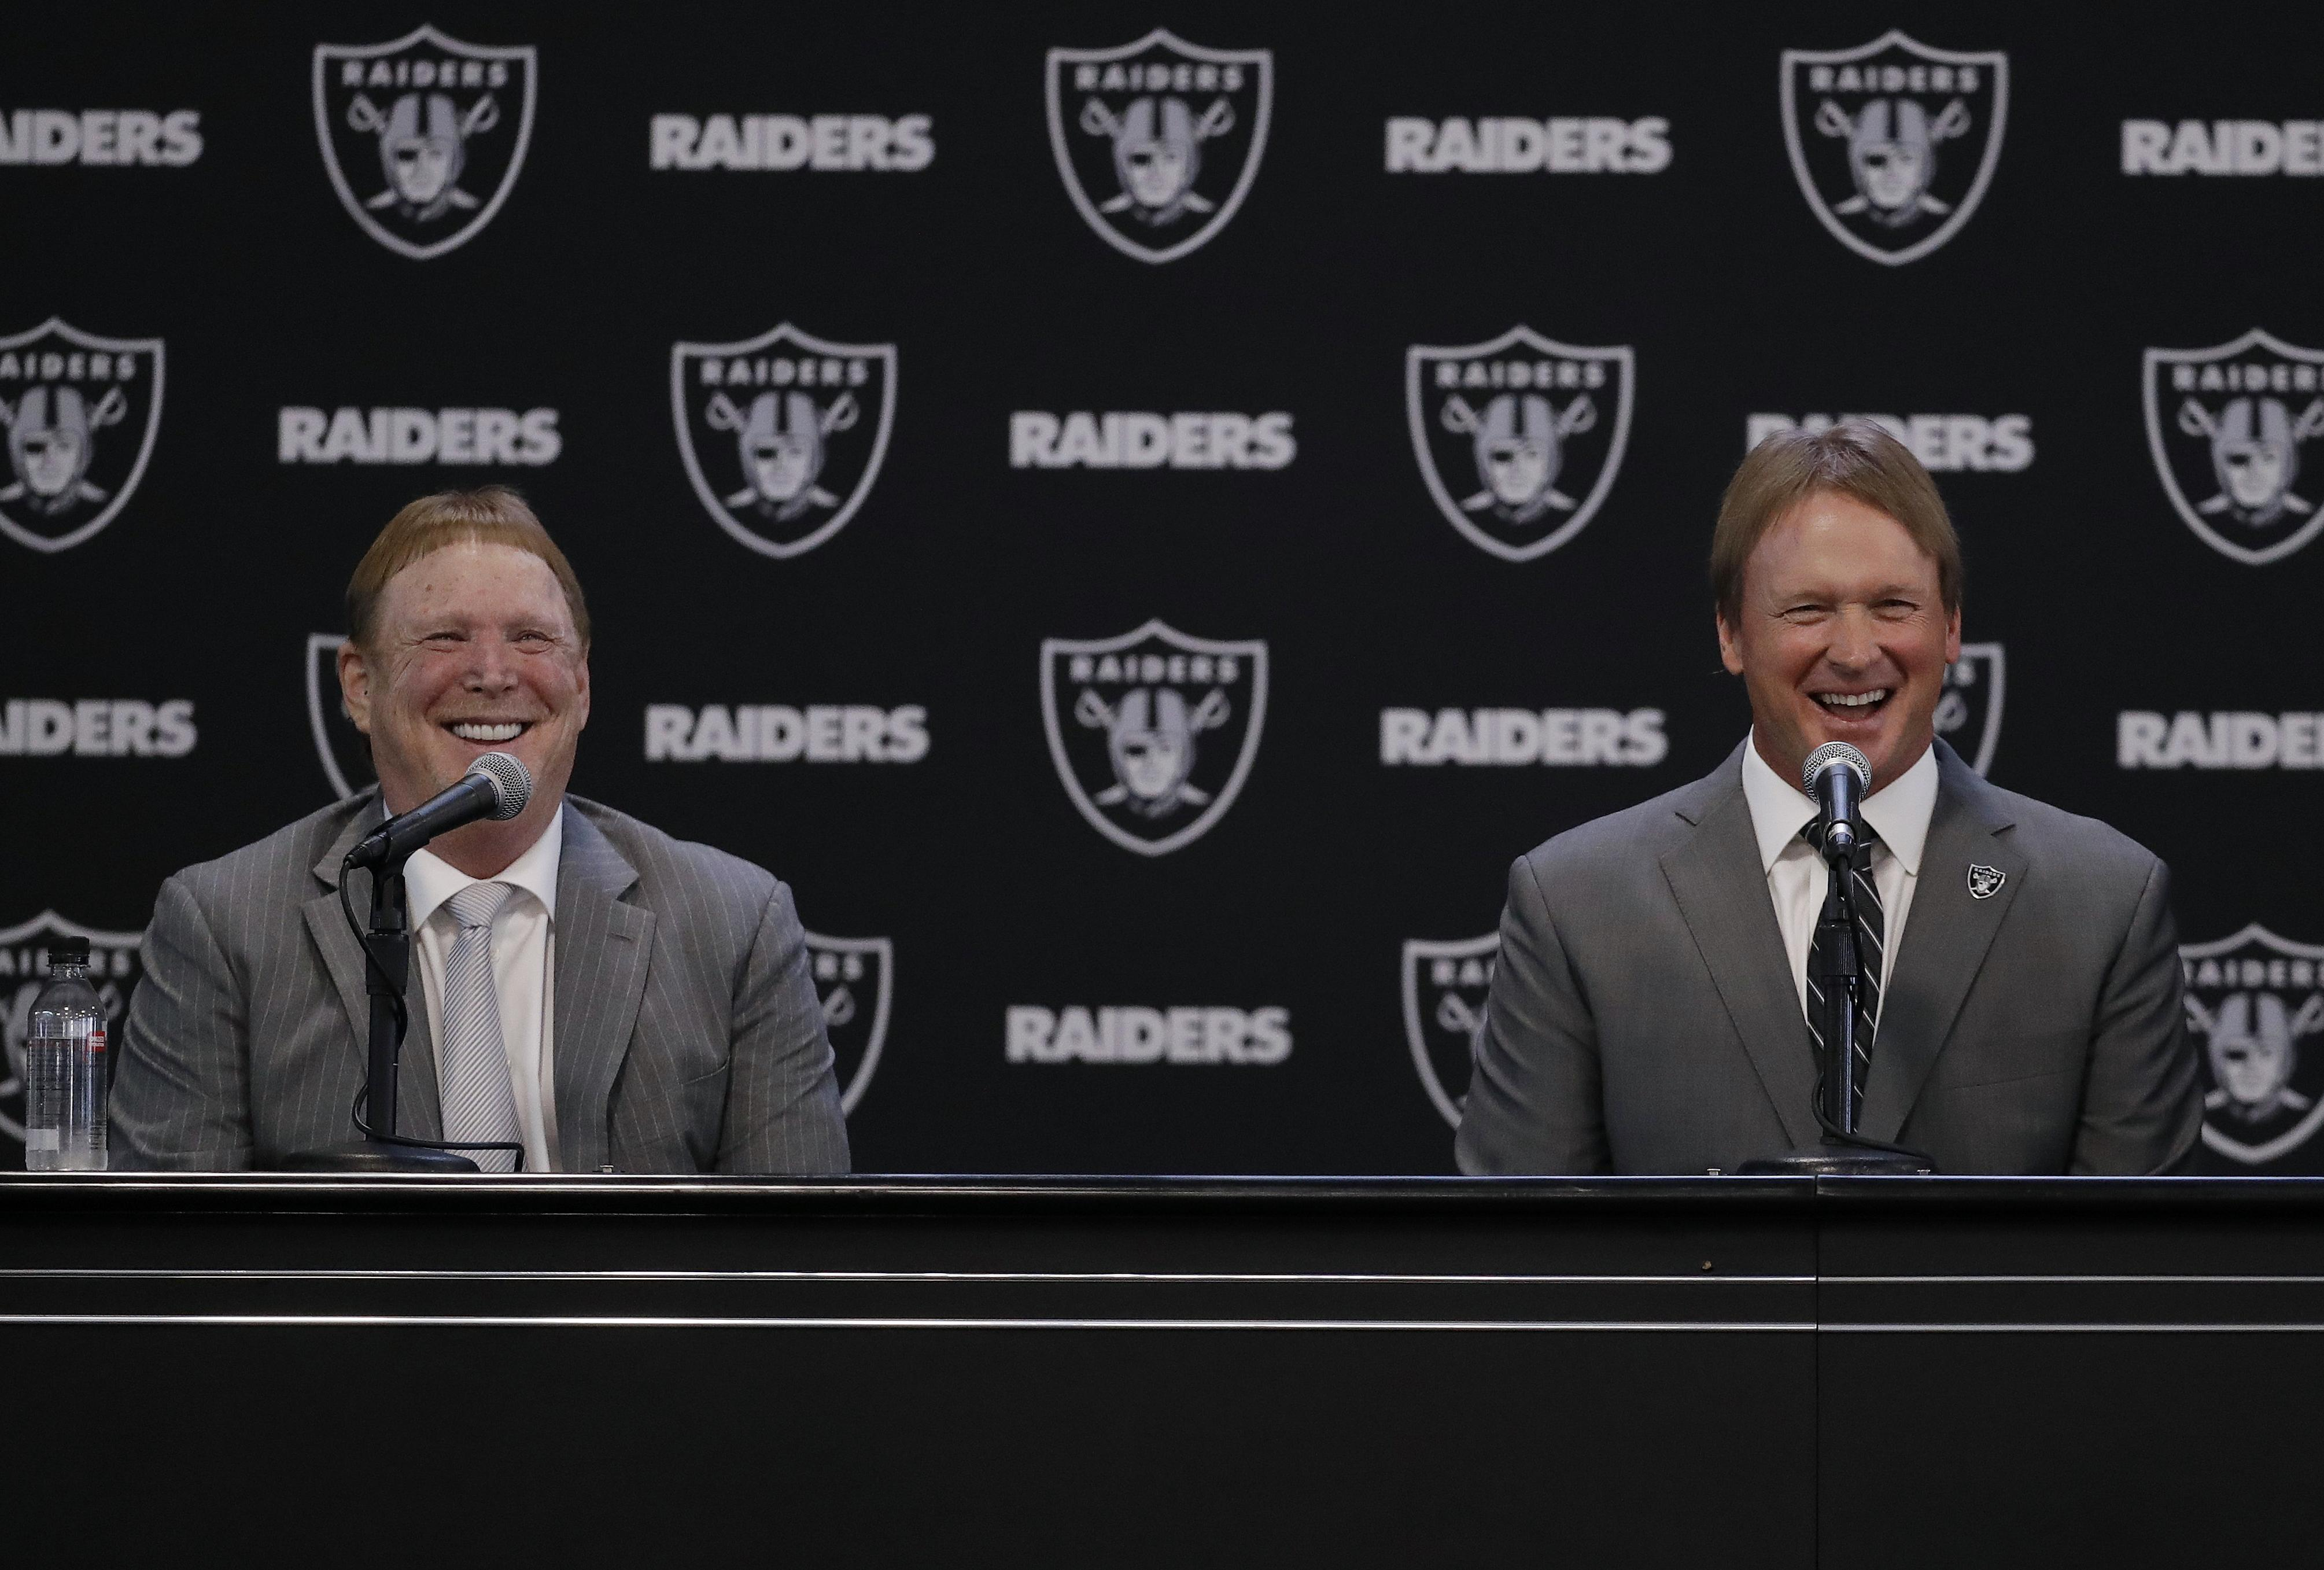 Advocacy group wants NFL to investigate Raiders for possible Rooney Rule violation